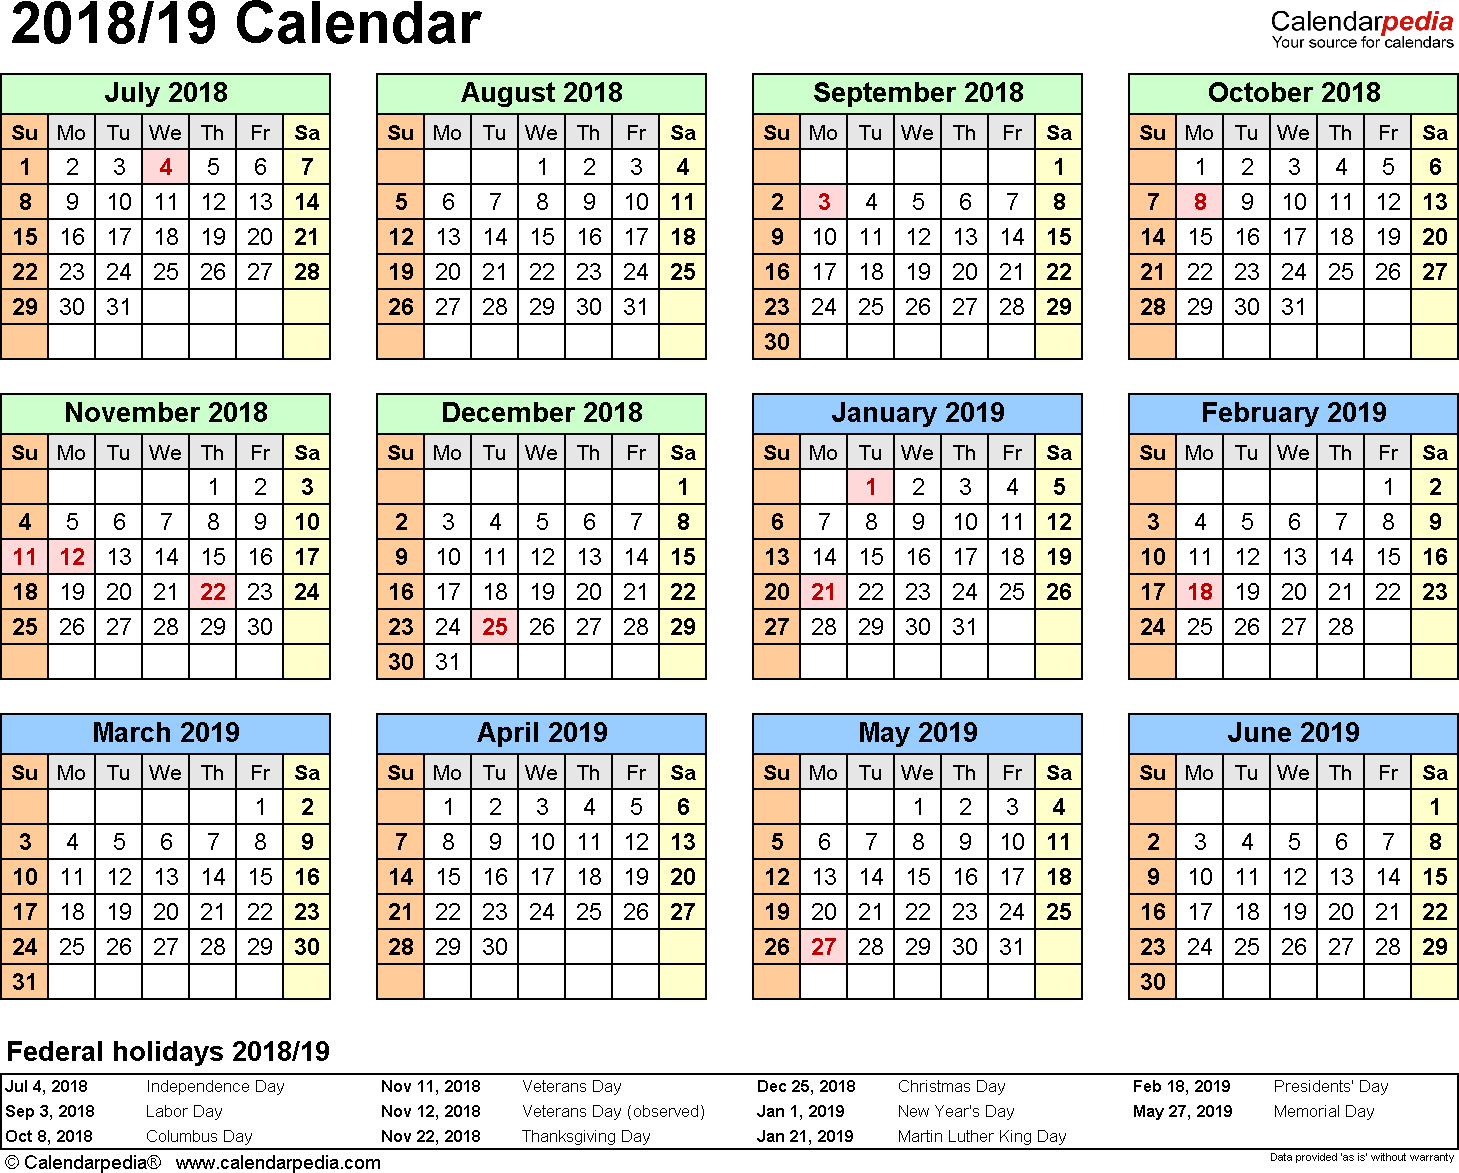 2019 Calendar Year At A Glance Printable With Split 2018 19 July To June PDF Templates